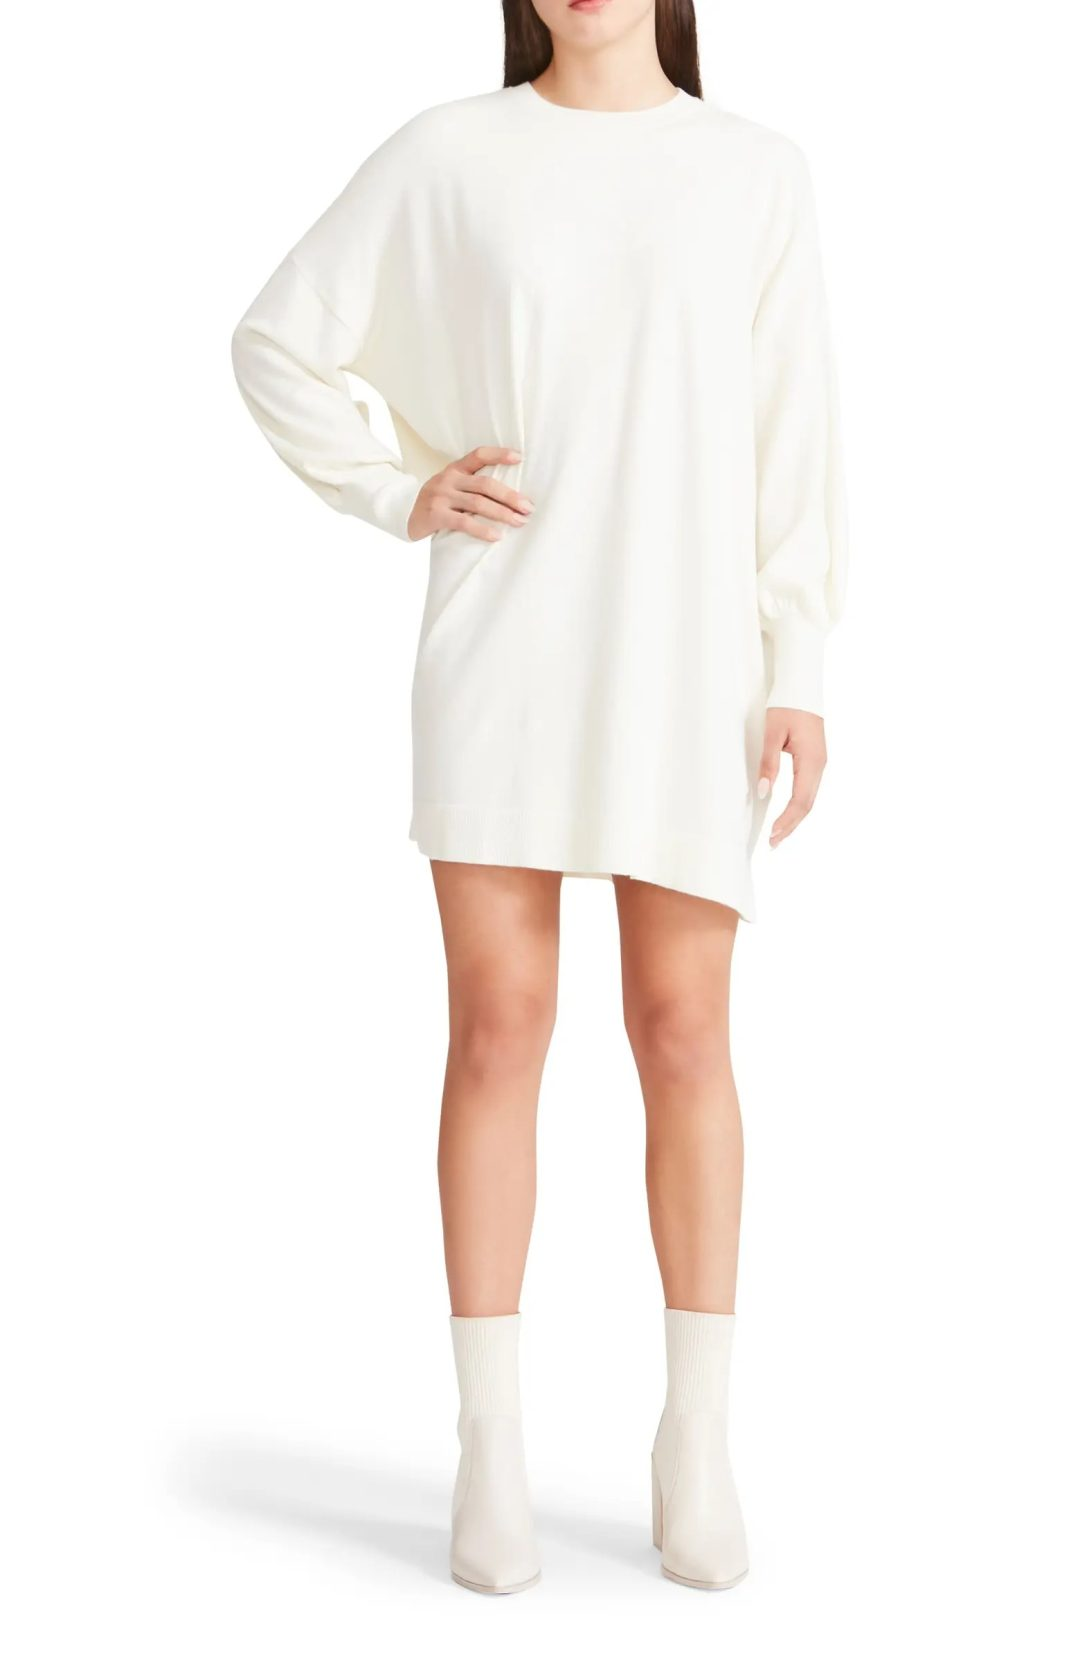 White sweater dress for cowboy boots